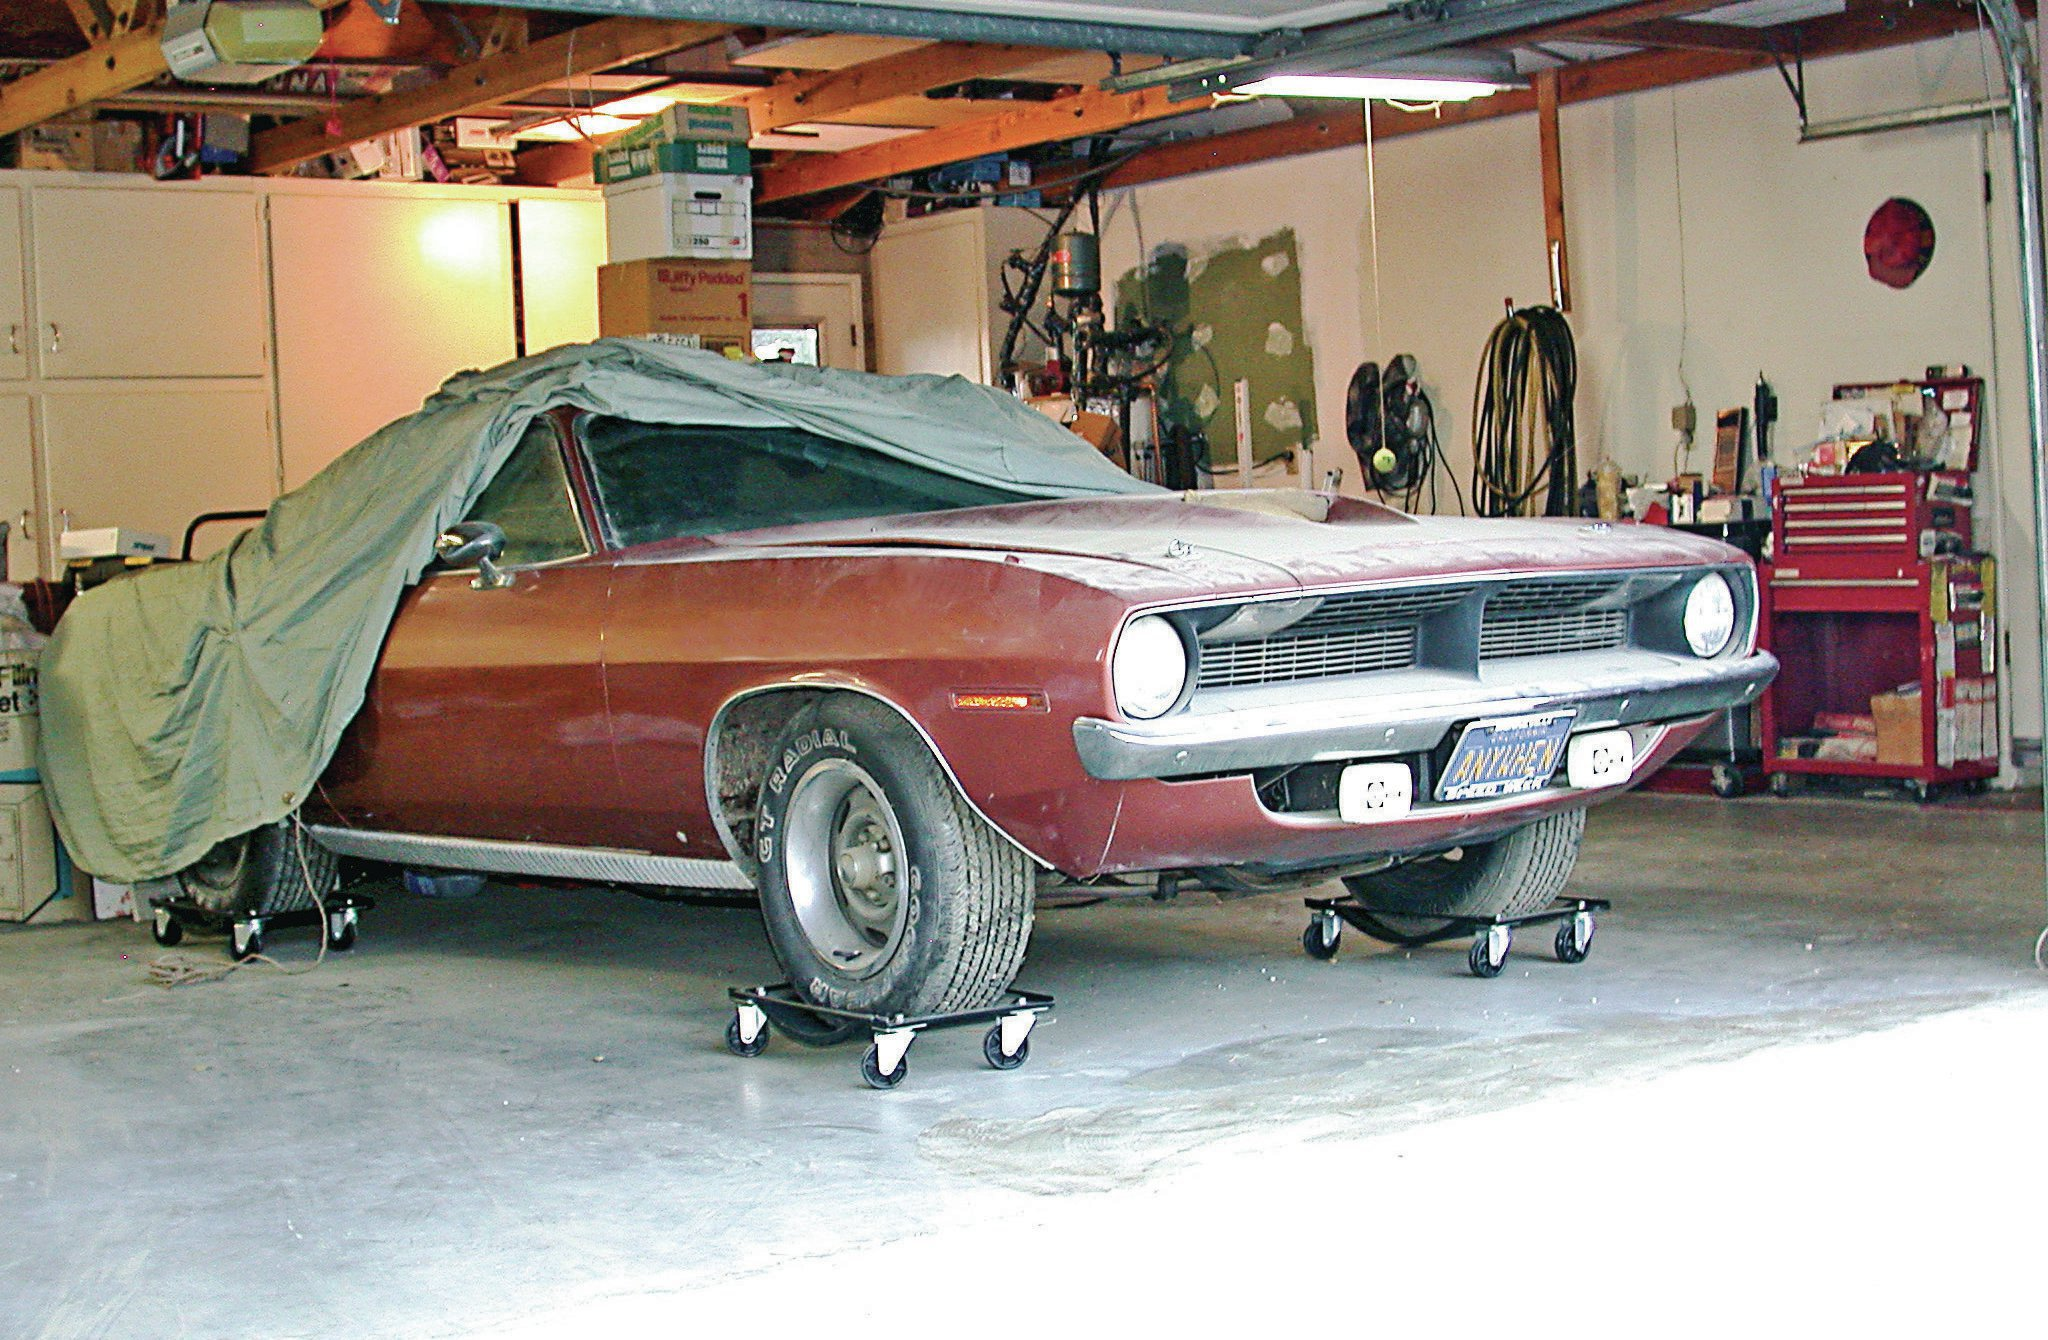 One of these days, Al Kirschenbaum plans to put his 1970 'Cuda back on the road. Currently in long-term storage, the car sports a later 360ci small-block with 3x2 Six Pak induction, as well as AAR 'Cuda suspension components. Careful prep putting the car into storage and meticulous checks before placing the car back into service should minimize any serious problems.